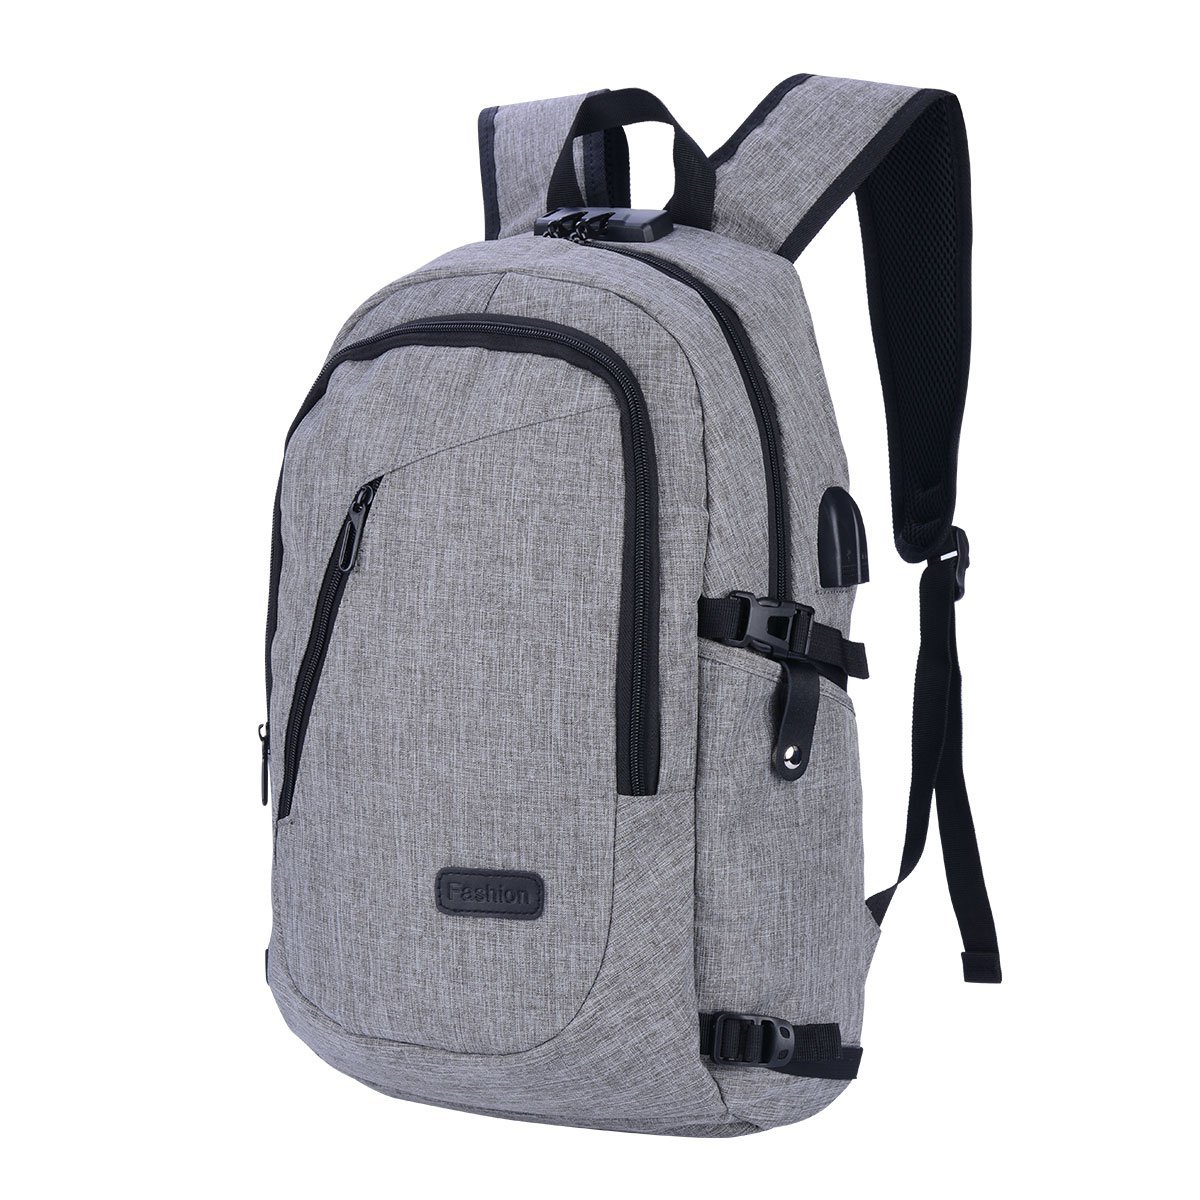 ea58ea281d5c Get Quotations · CkeyiN Water Resistant Oxford Fabric Laptop Backpack with  USB Charging Port Earphone Hole Anti-theft